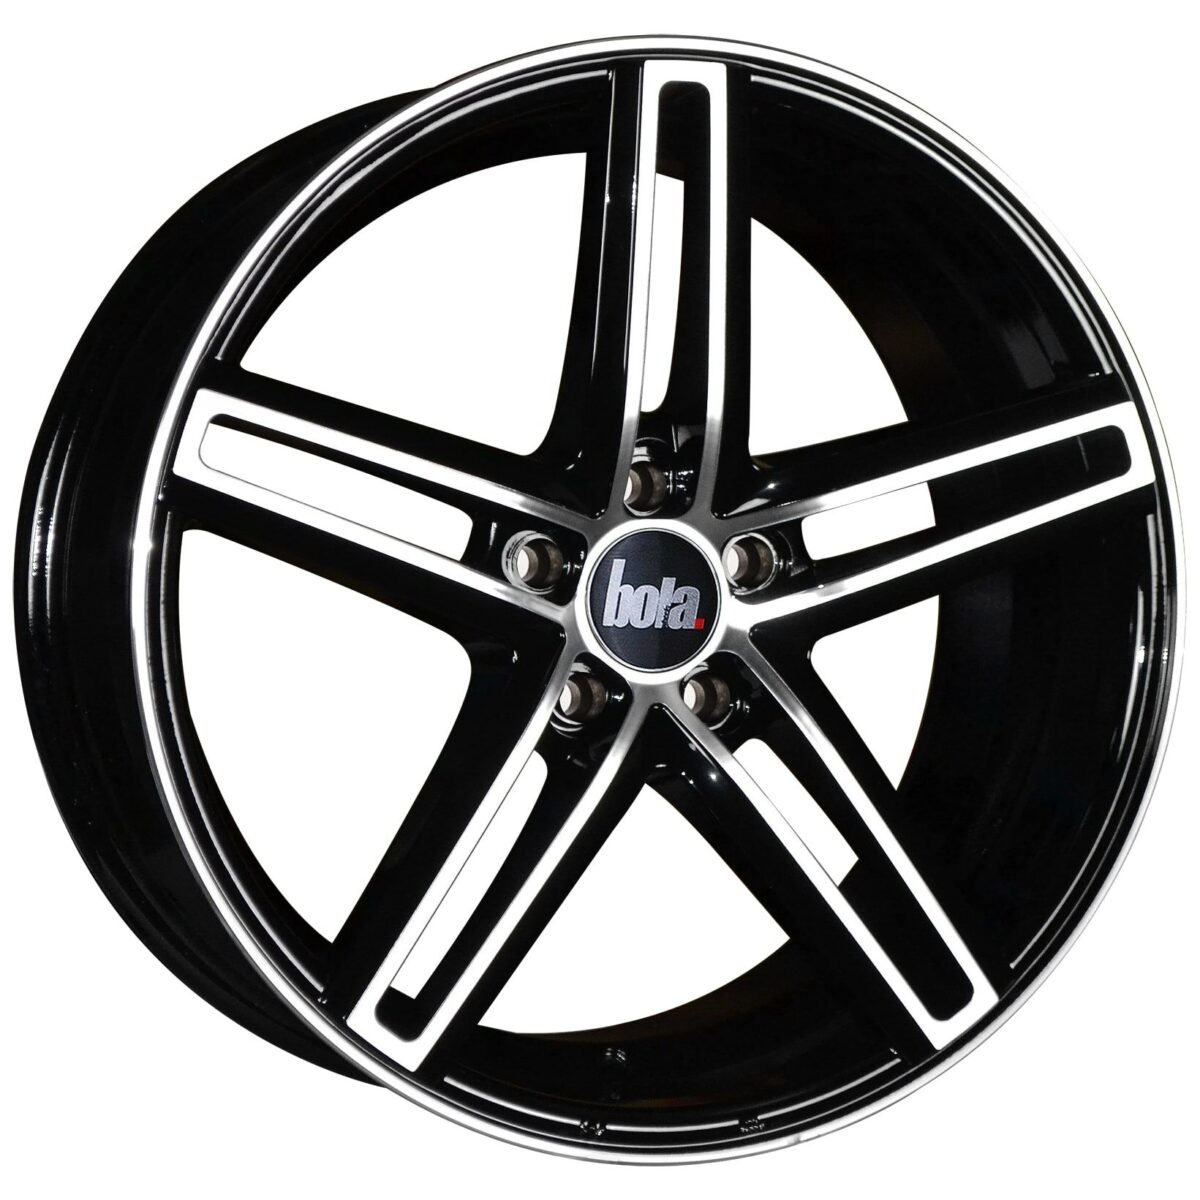 "19"" BOLA B3 Wheels - Gloss Black Polished Face - VW / Audi / Mercedes - 5x112"